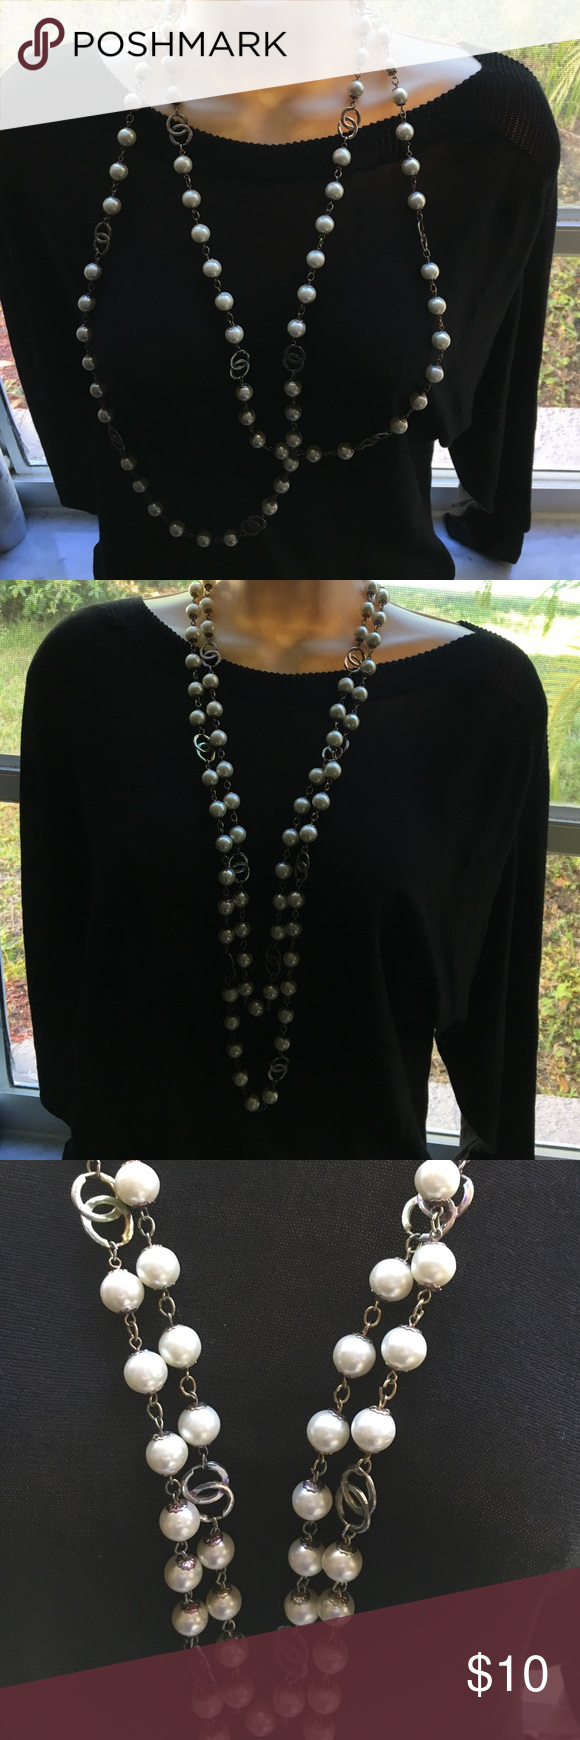 Vintage faux pearls extra long necklace Vintage amazing faux pearl necklace Jewelry Necklaces